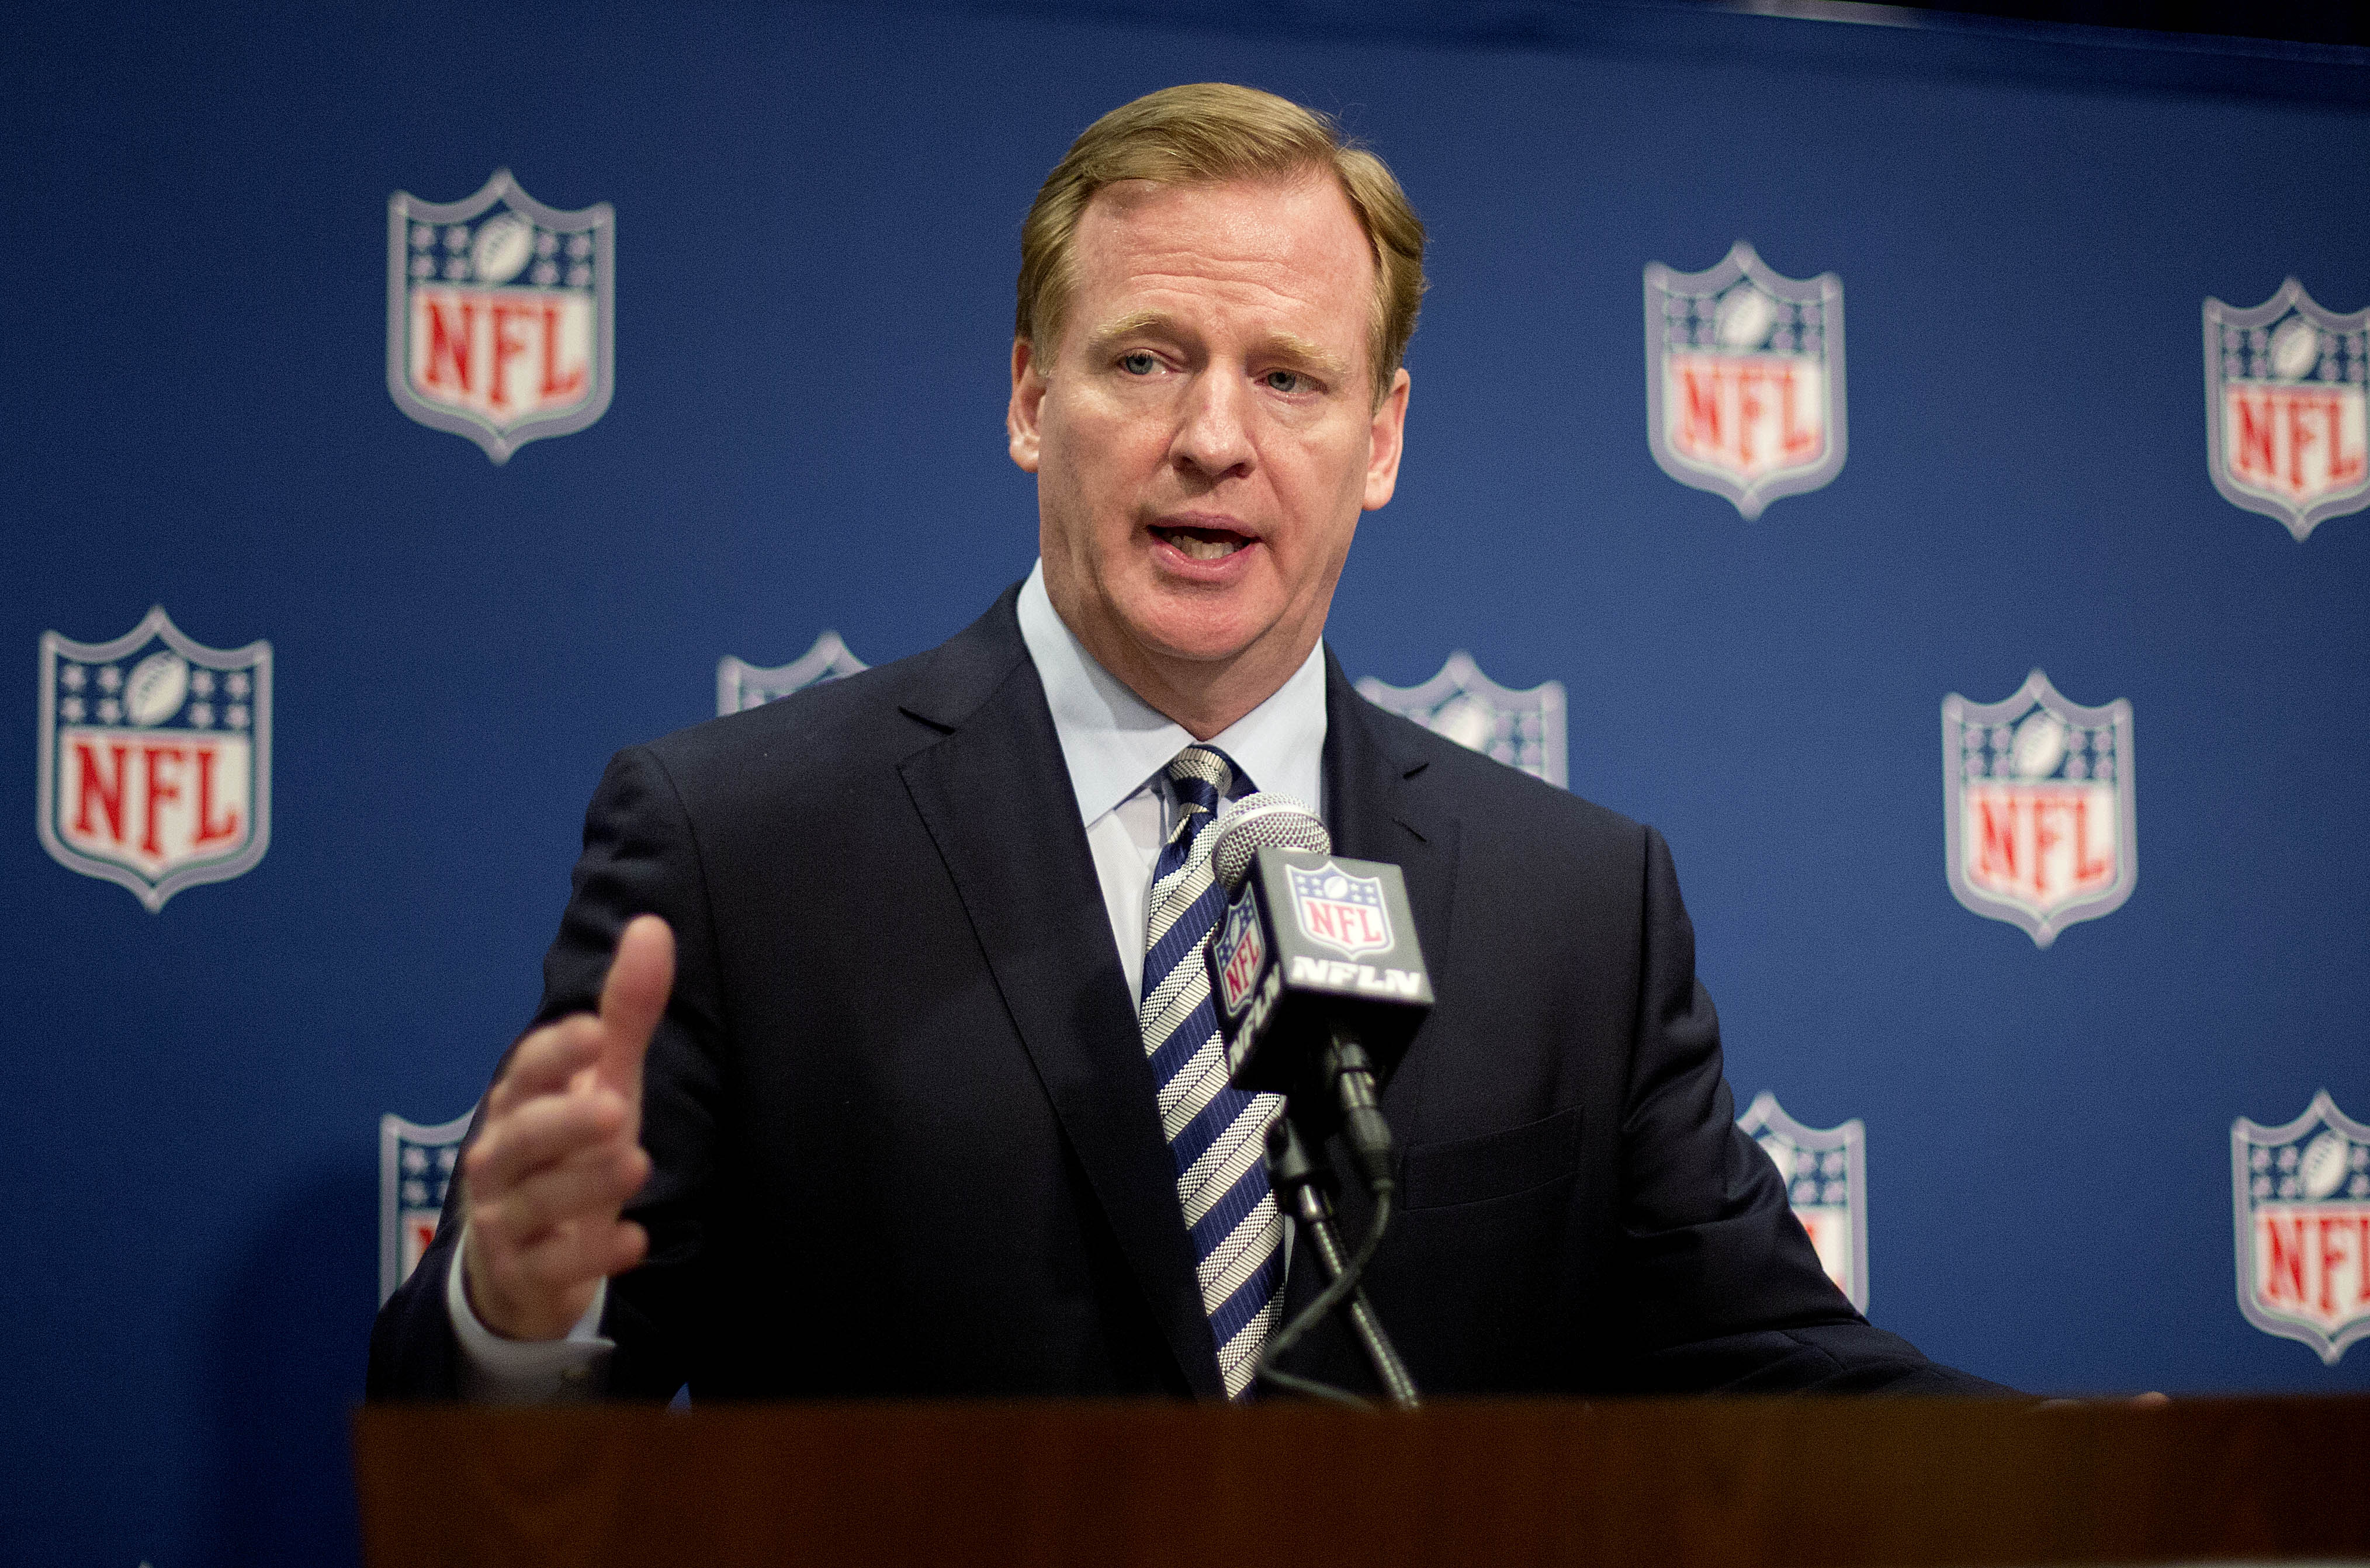 NFL's Roger Goodell: 'We Will Get Our House In Order' In Handli…